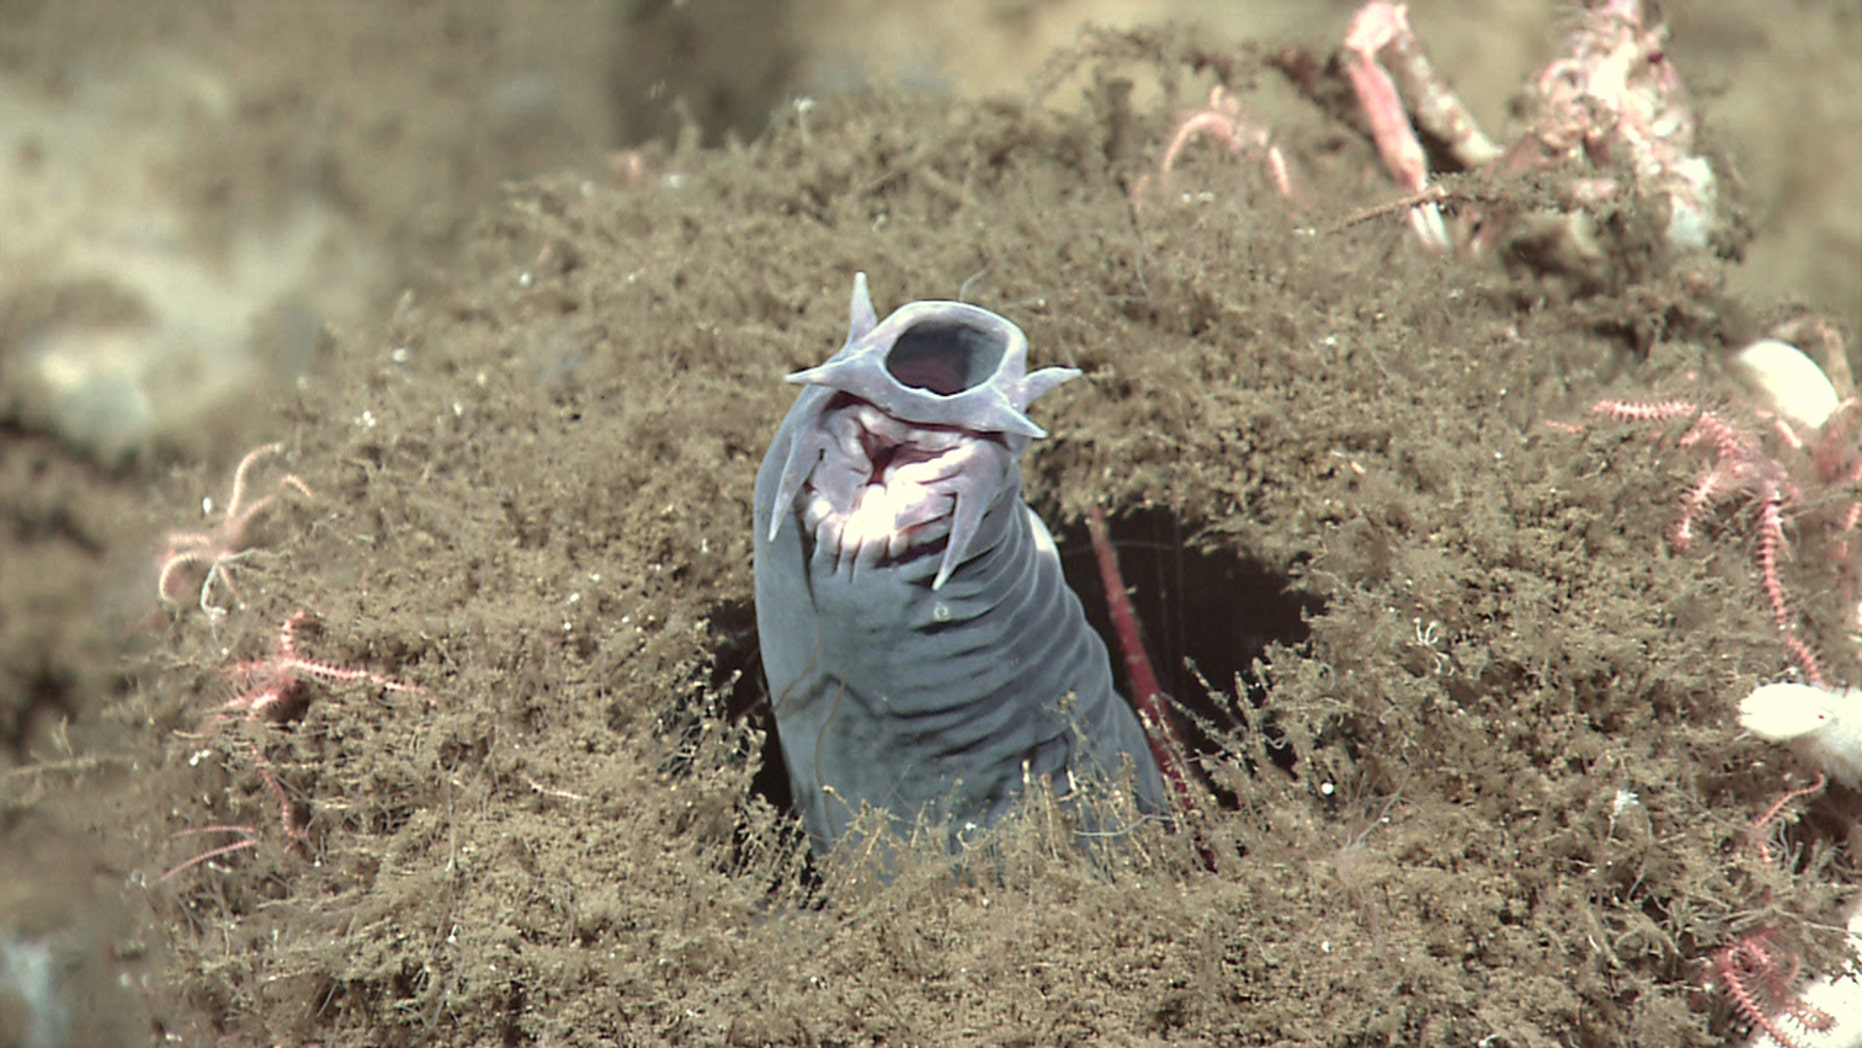 A hagfish protruding from a sponge. (Credit: NOAA Okeanos Explorer Program)